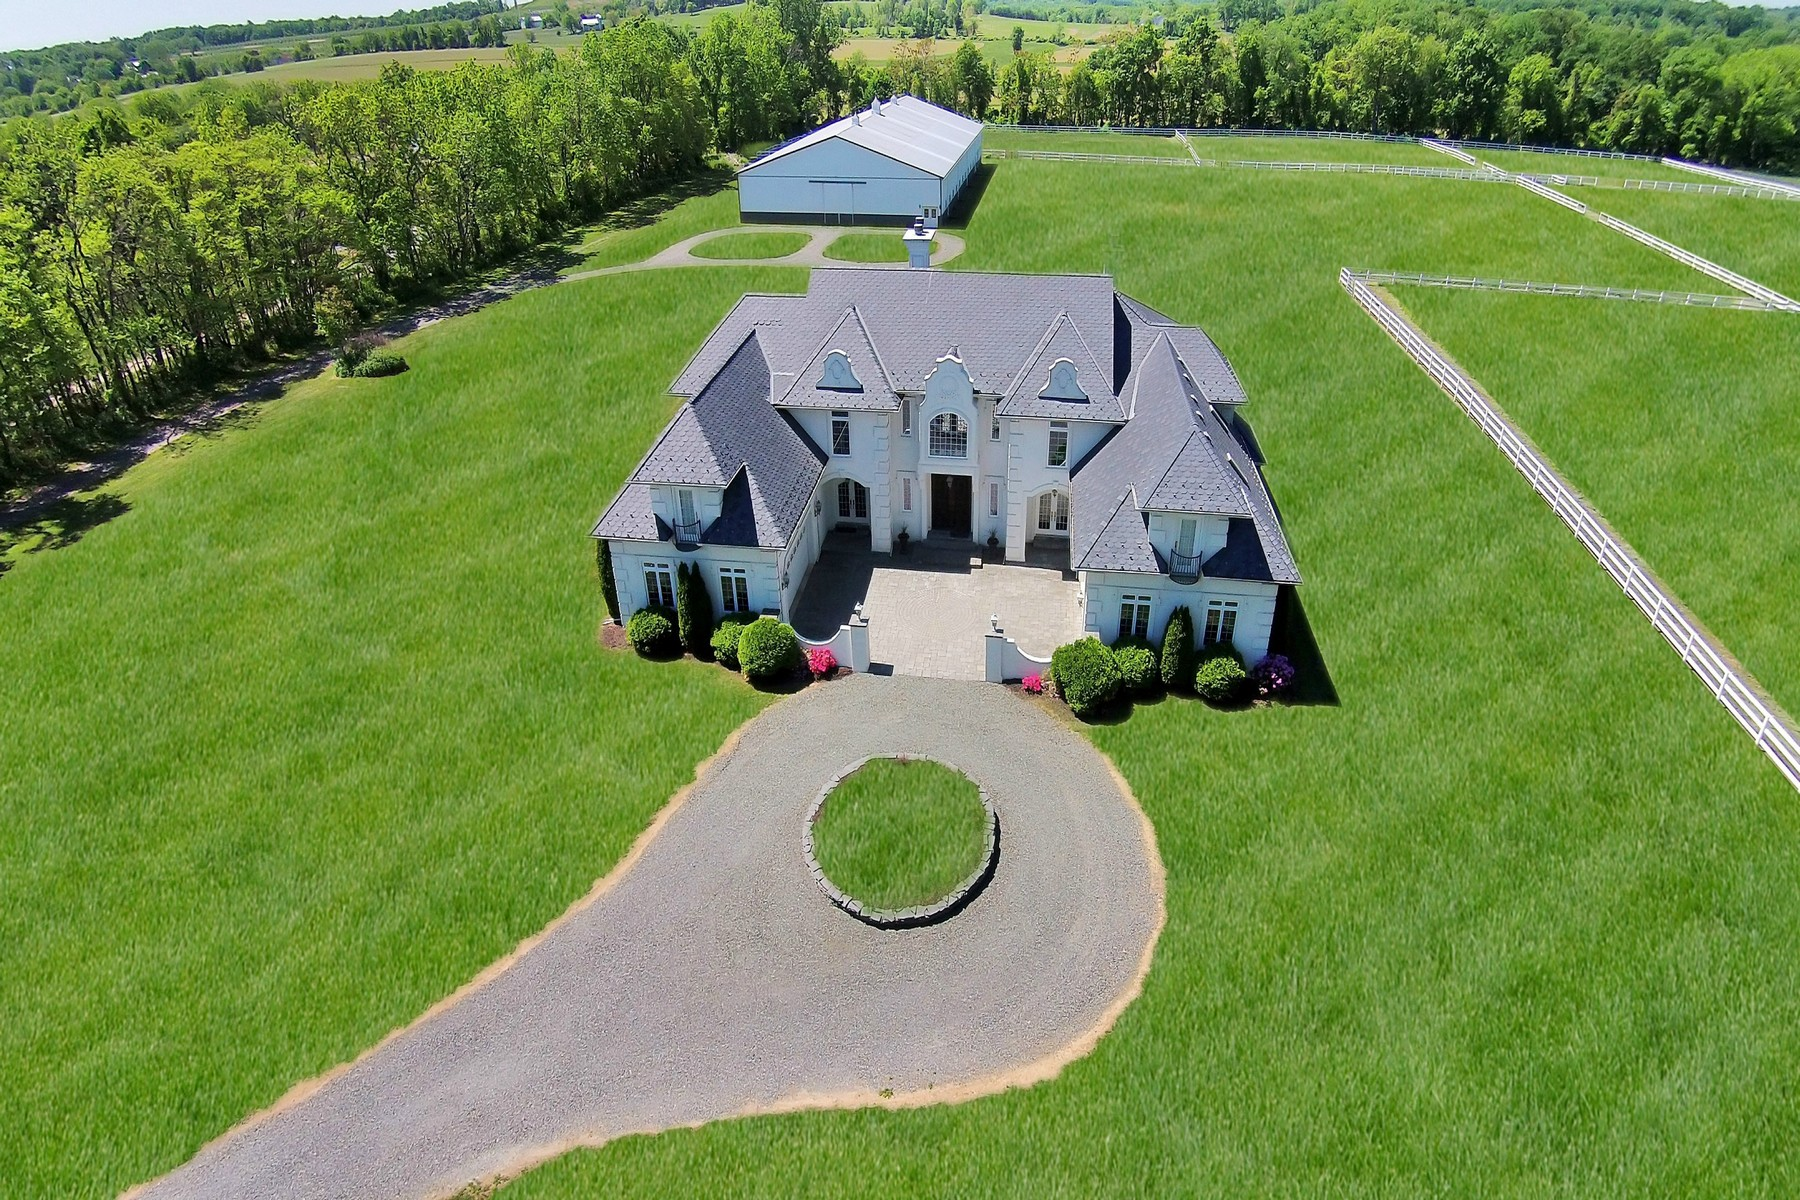 Single Family Home for Sale at Luxurious French Manor 3-5 Hill and Dale Tewksbury Township, New Jersey 08833 United States